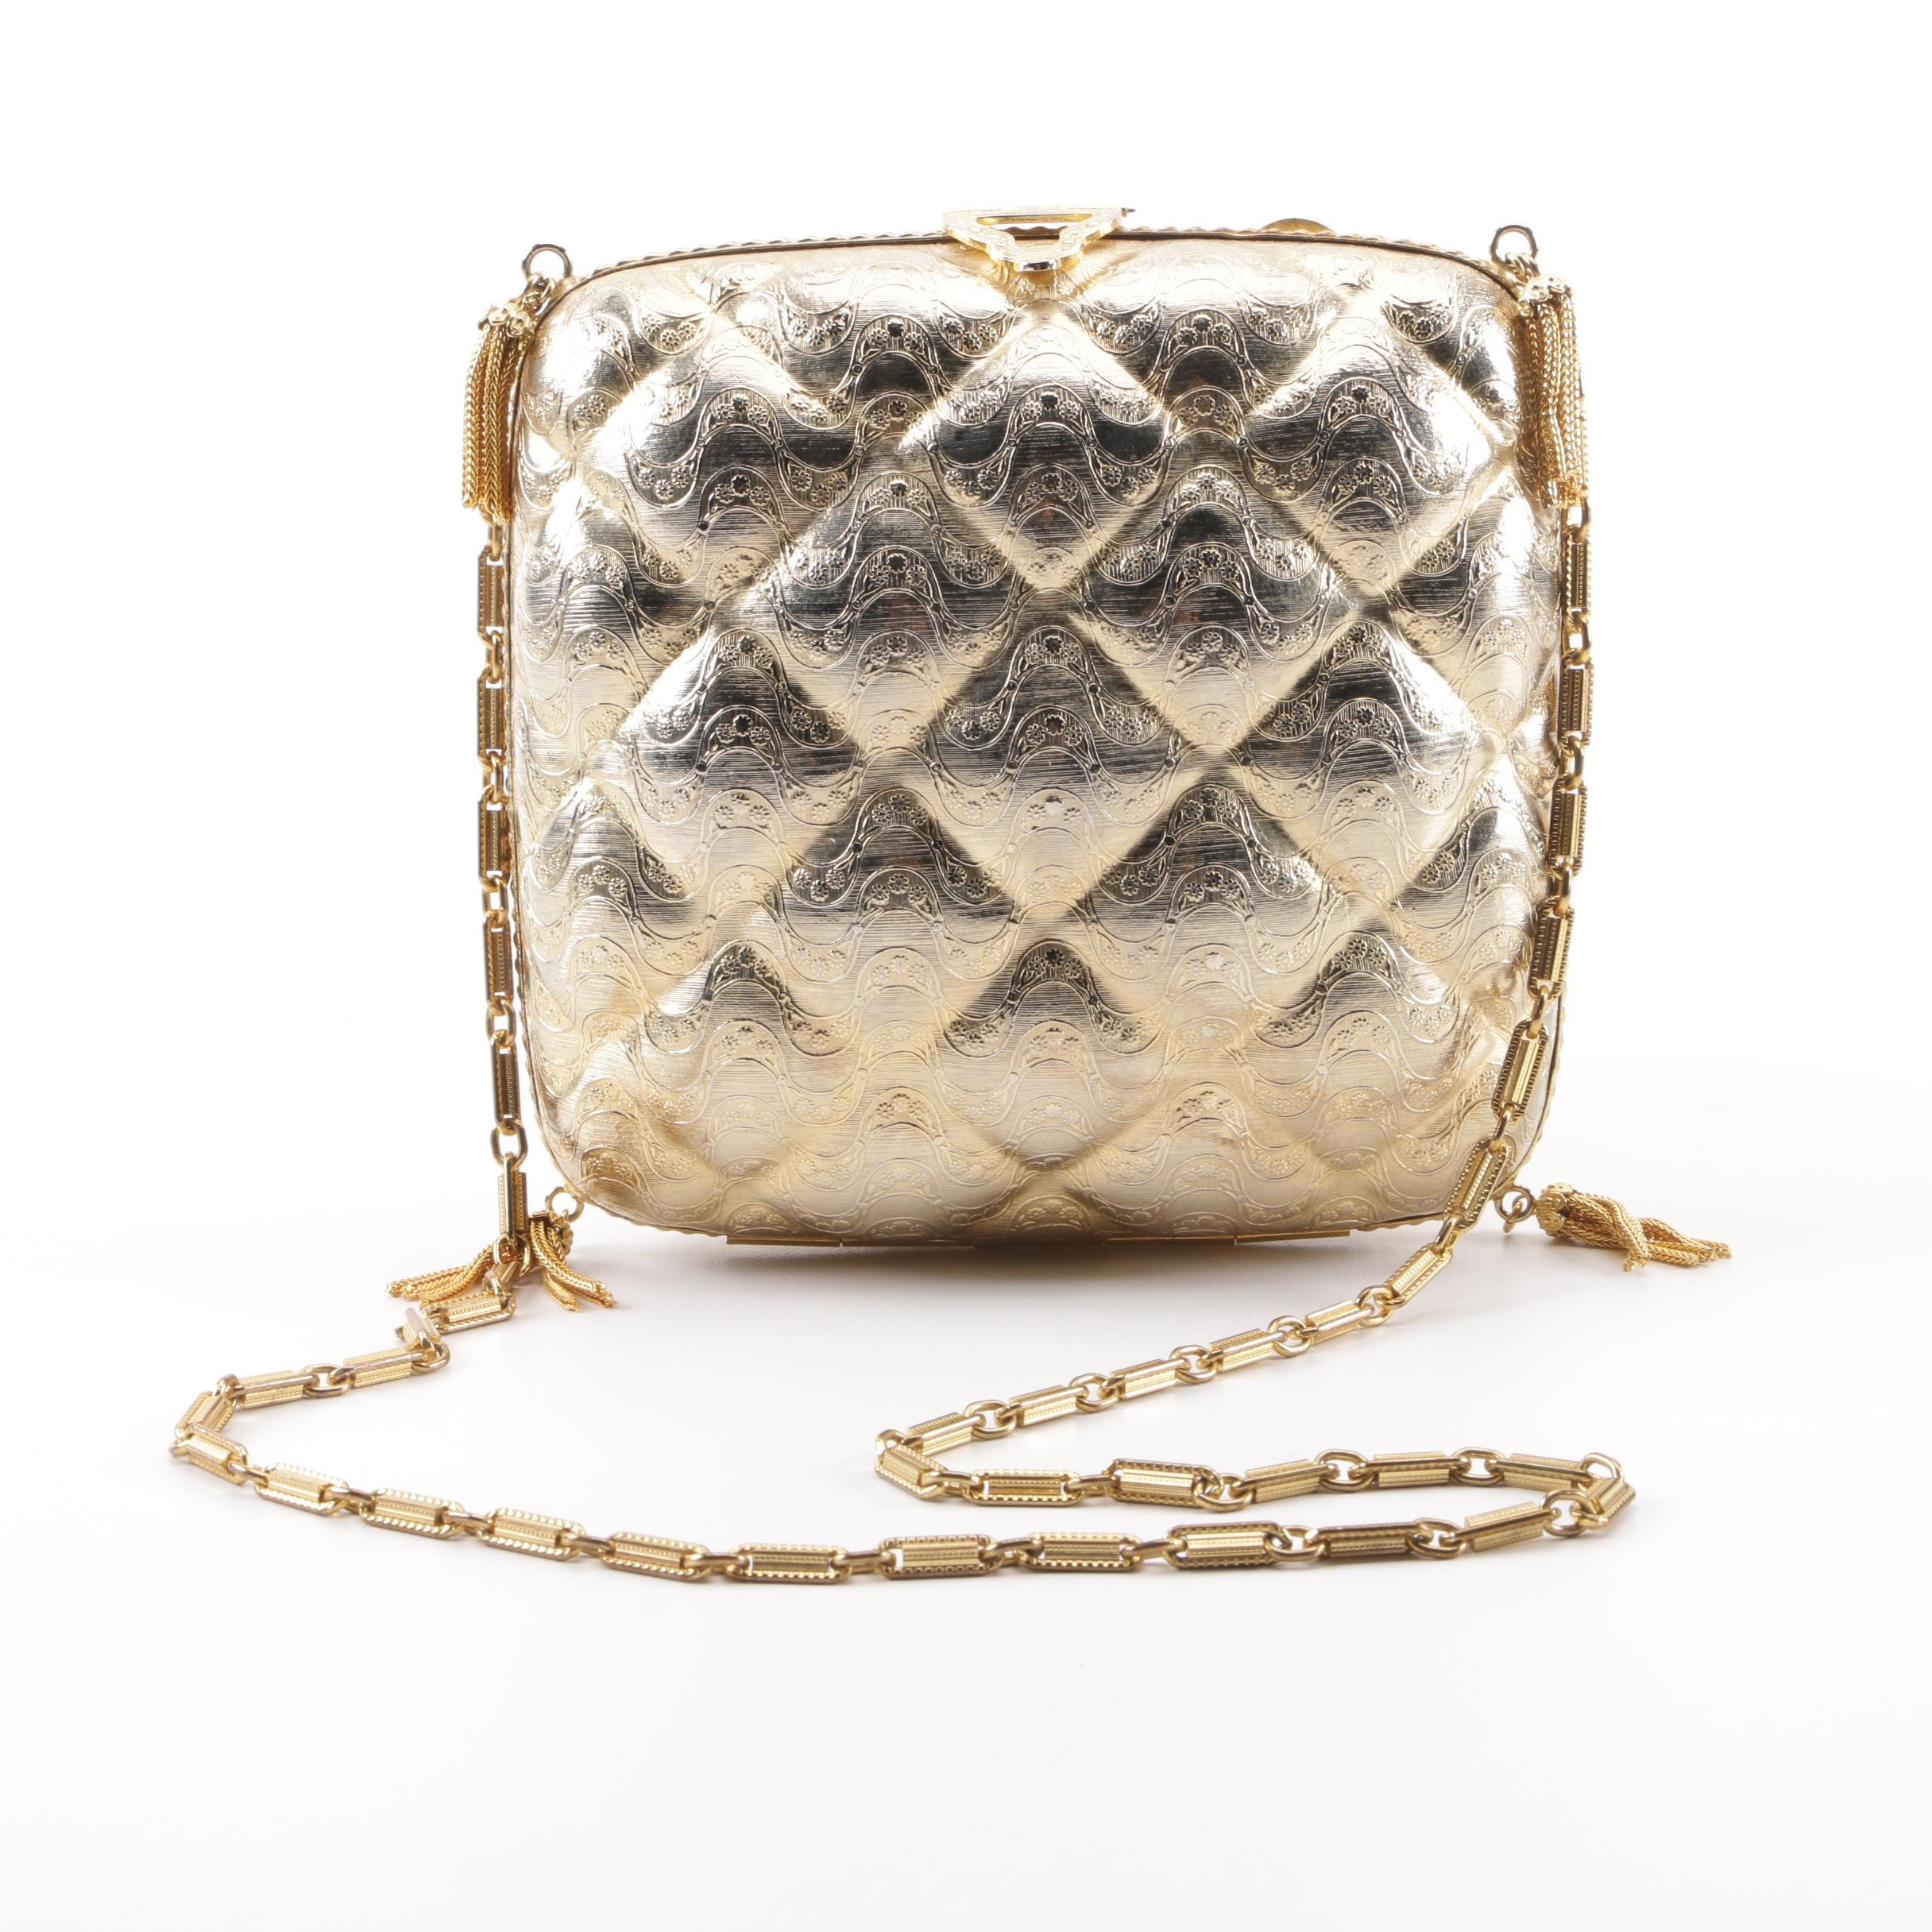 Italian Quilted Pattern Gold Tone Metal Floral Embossed Evening Bag with Tassels